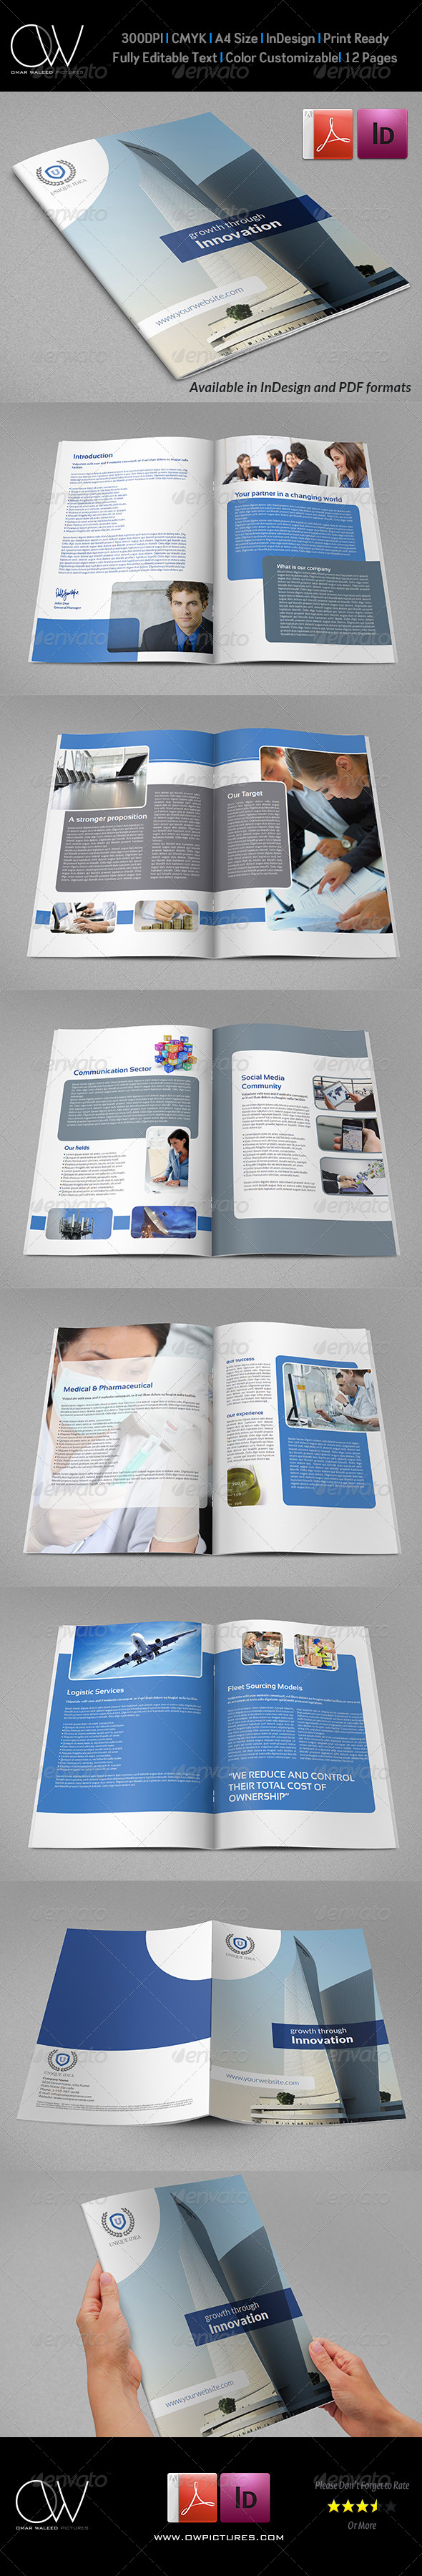 GraphicRiver Company Brochure Template Vol.31 12 Pages 7176384